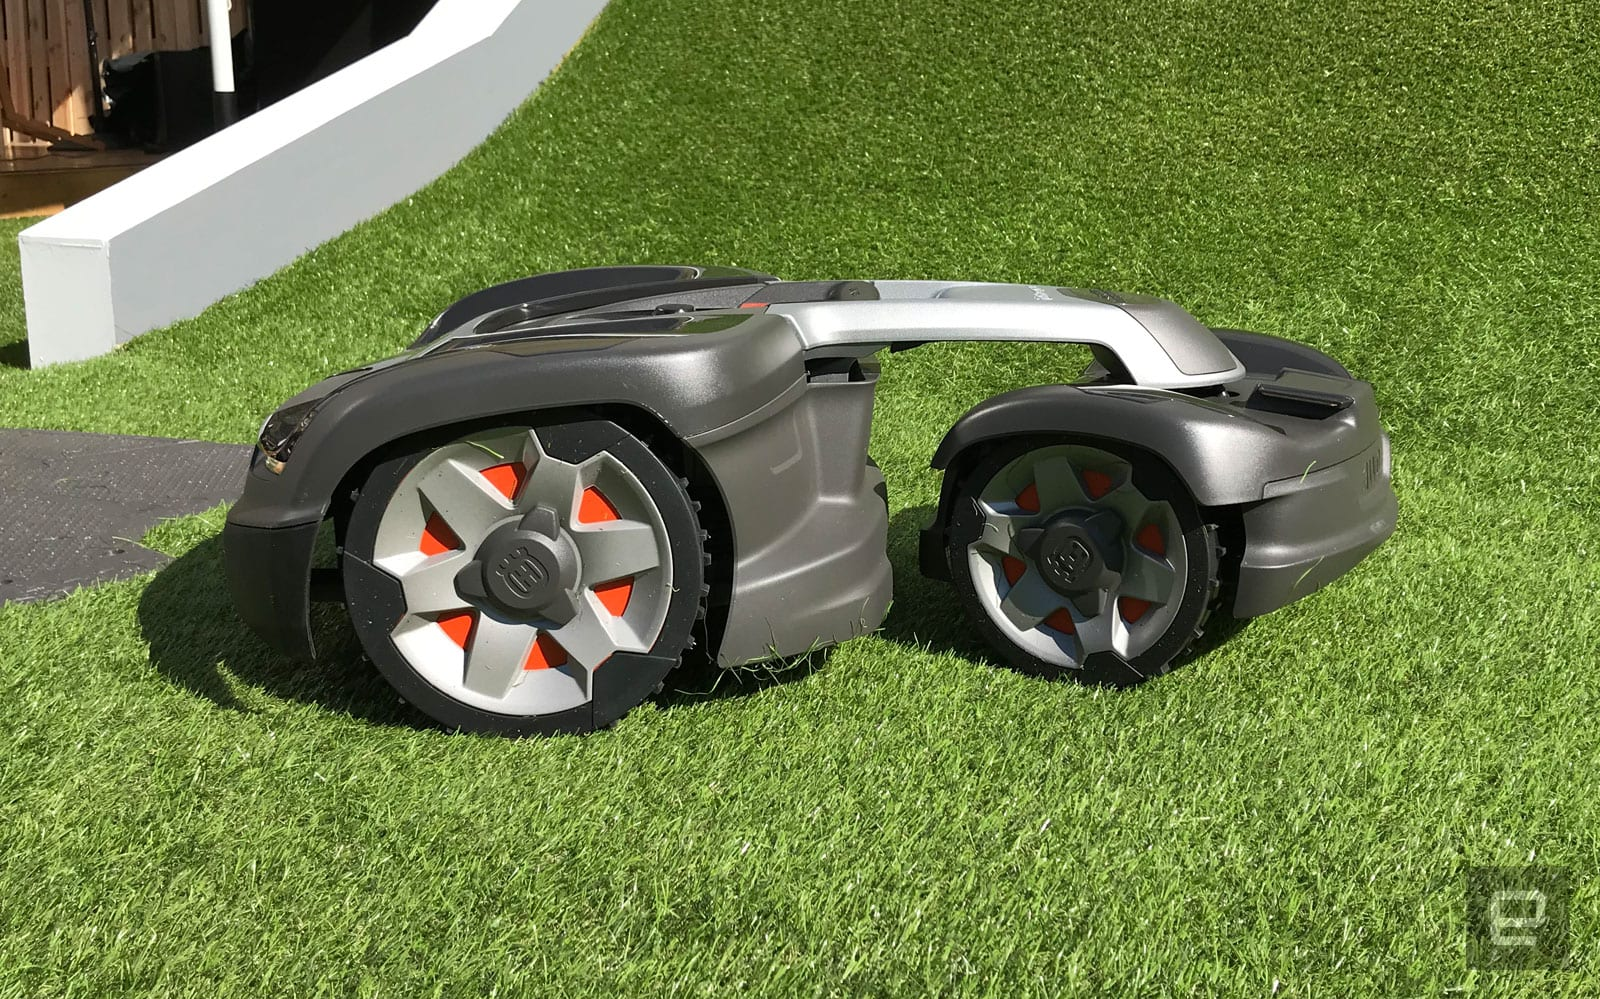 Hills Can T Stop This All Wheel Drive Robot Lawn Mower